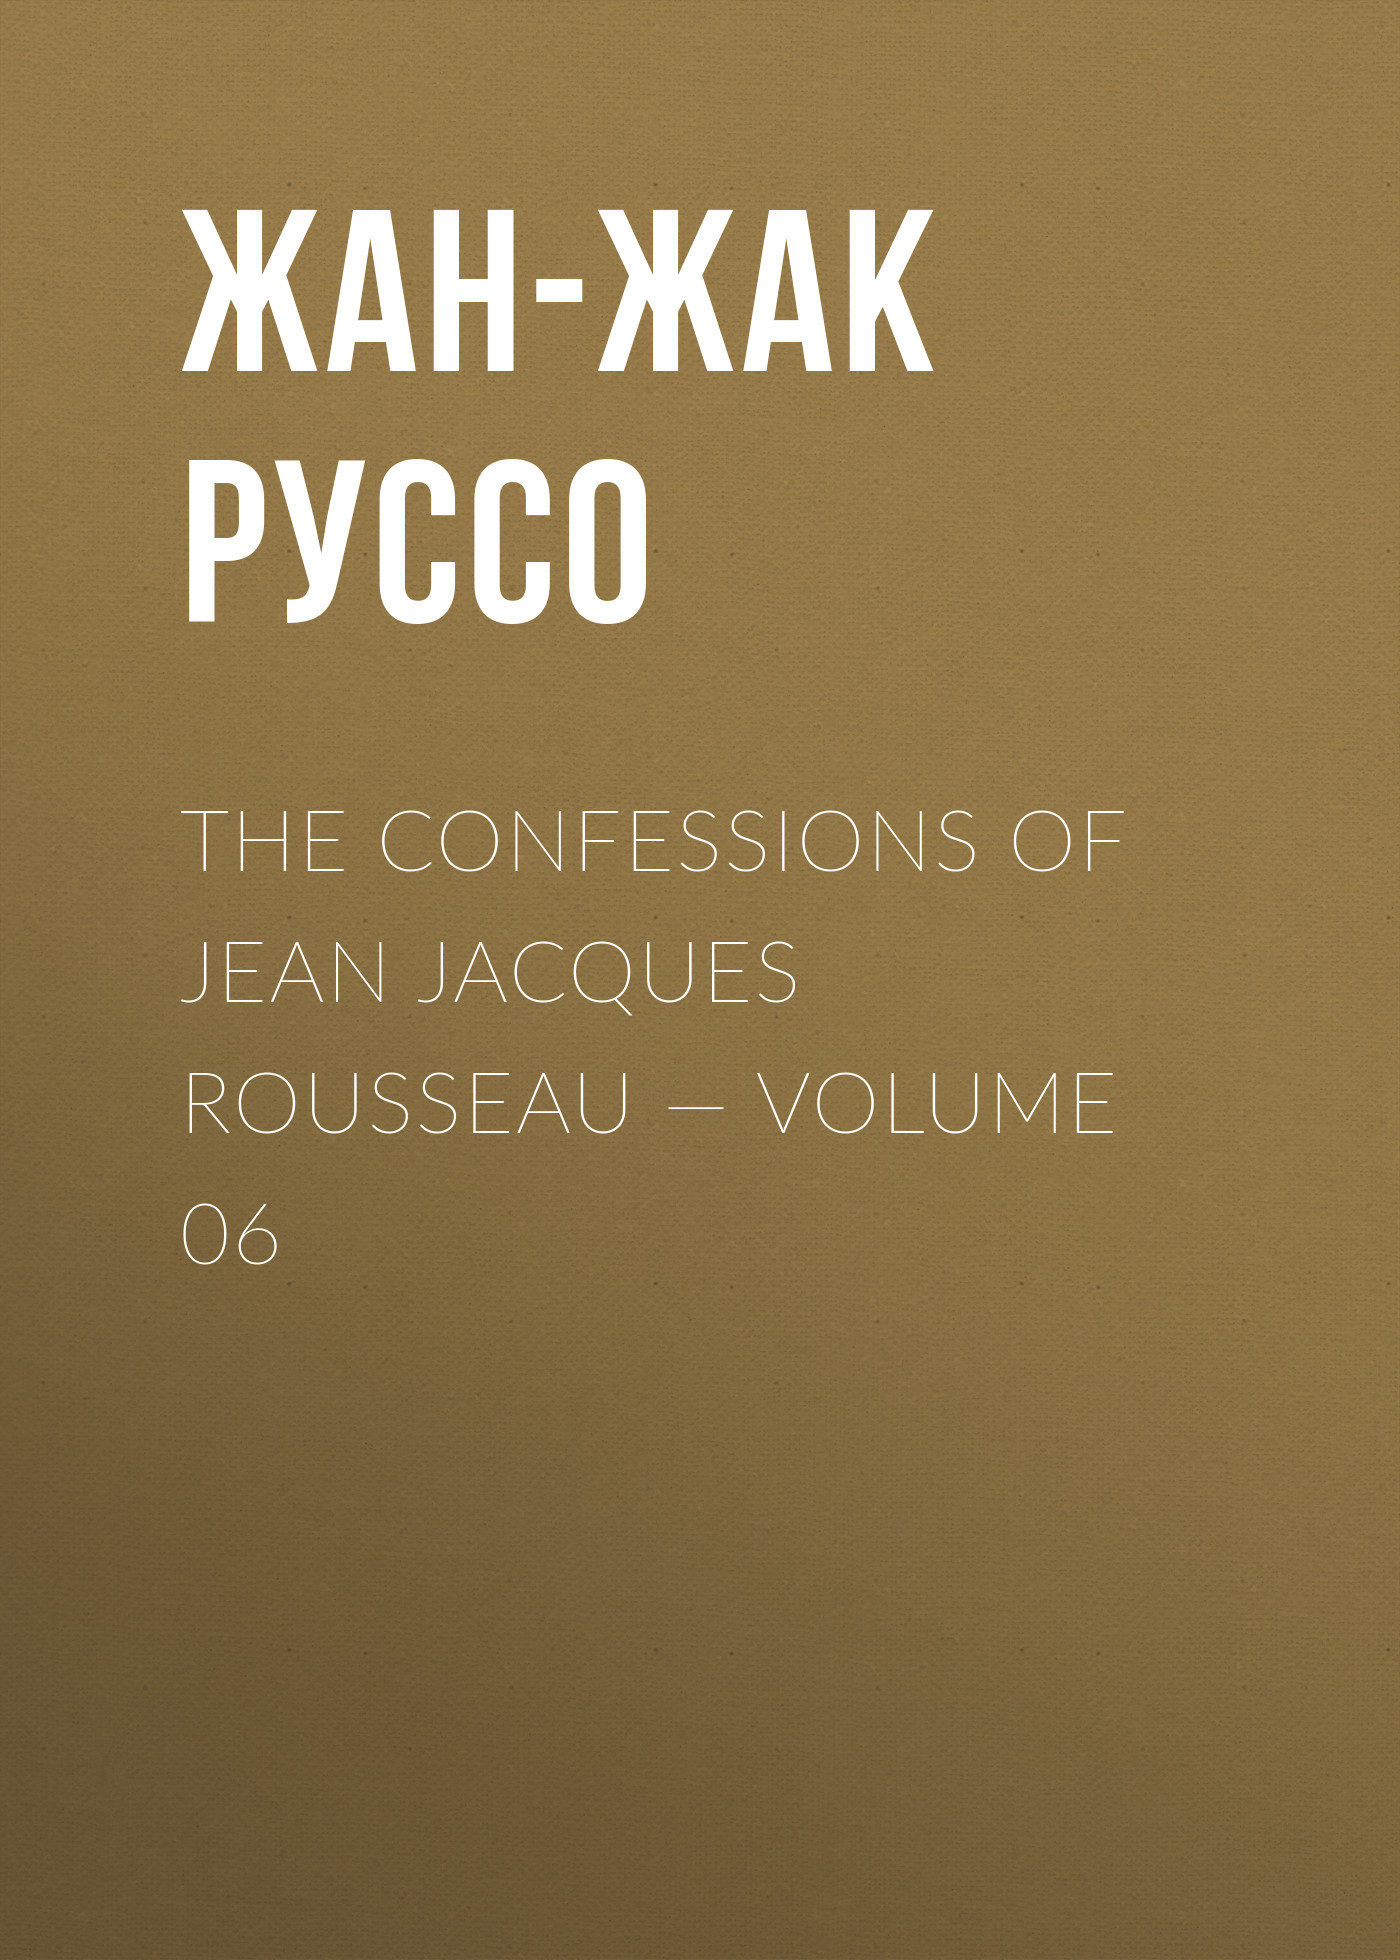 Жан-Жак Руссо The Confessions of Jean Jacques Rousseau — Volume 06 jean jacques rousseau mélanges t 2